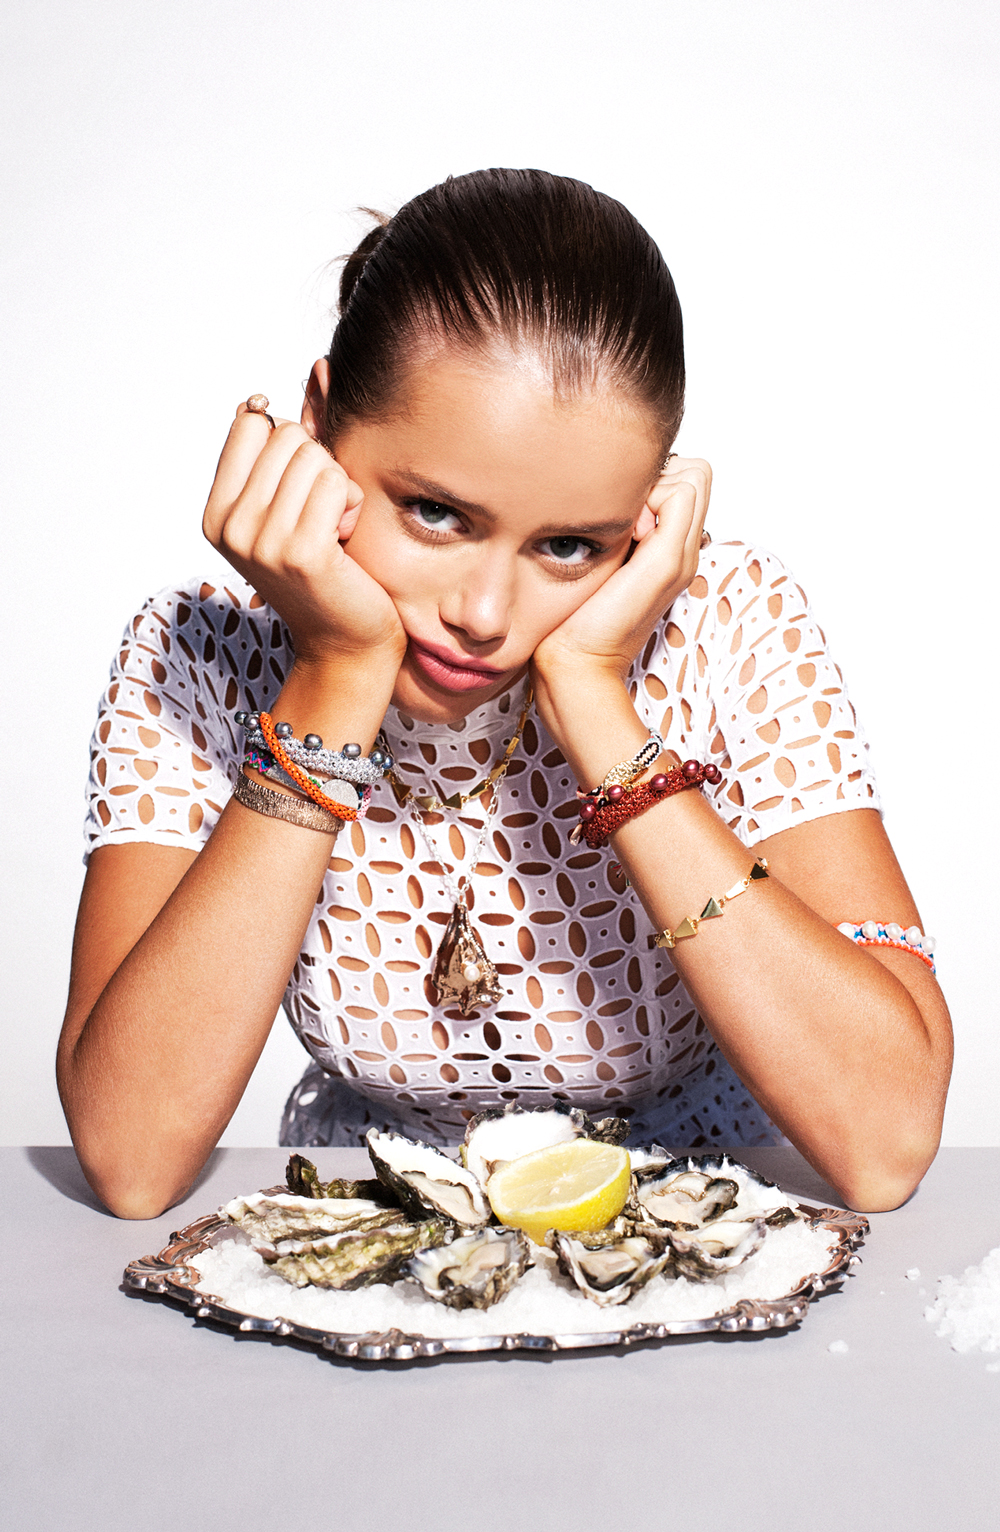 What to eat during fashion week; nutrition tips for busy lives; nutrition tips for stress; fashion models diet secrets.